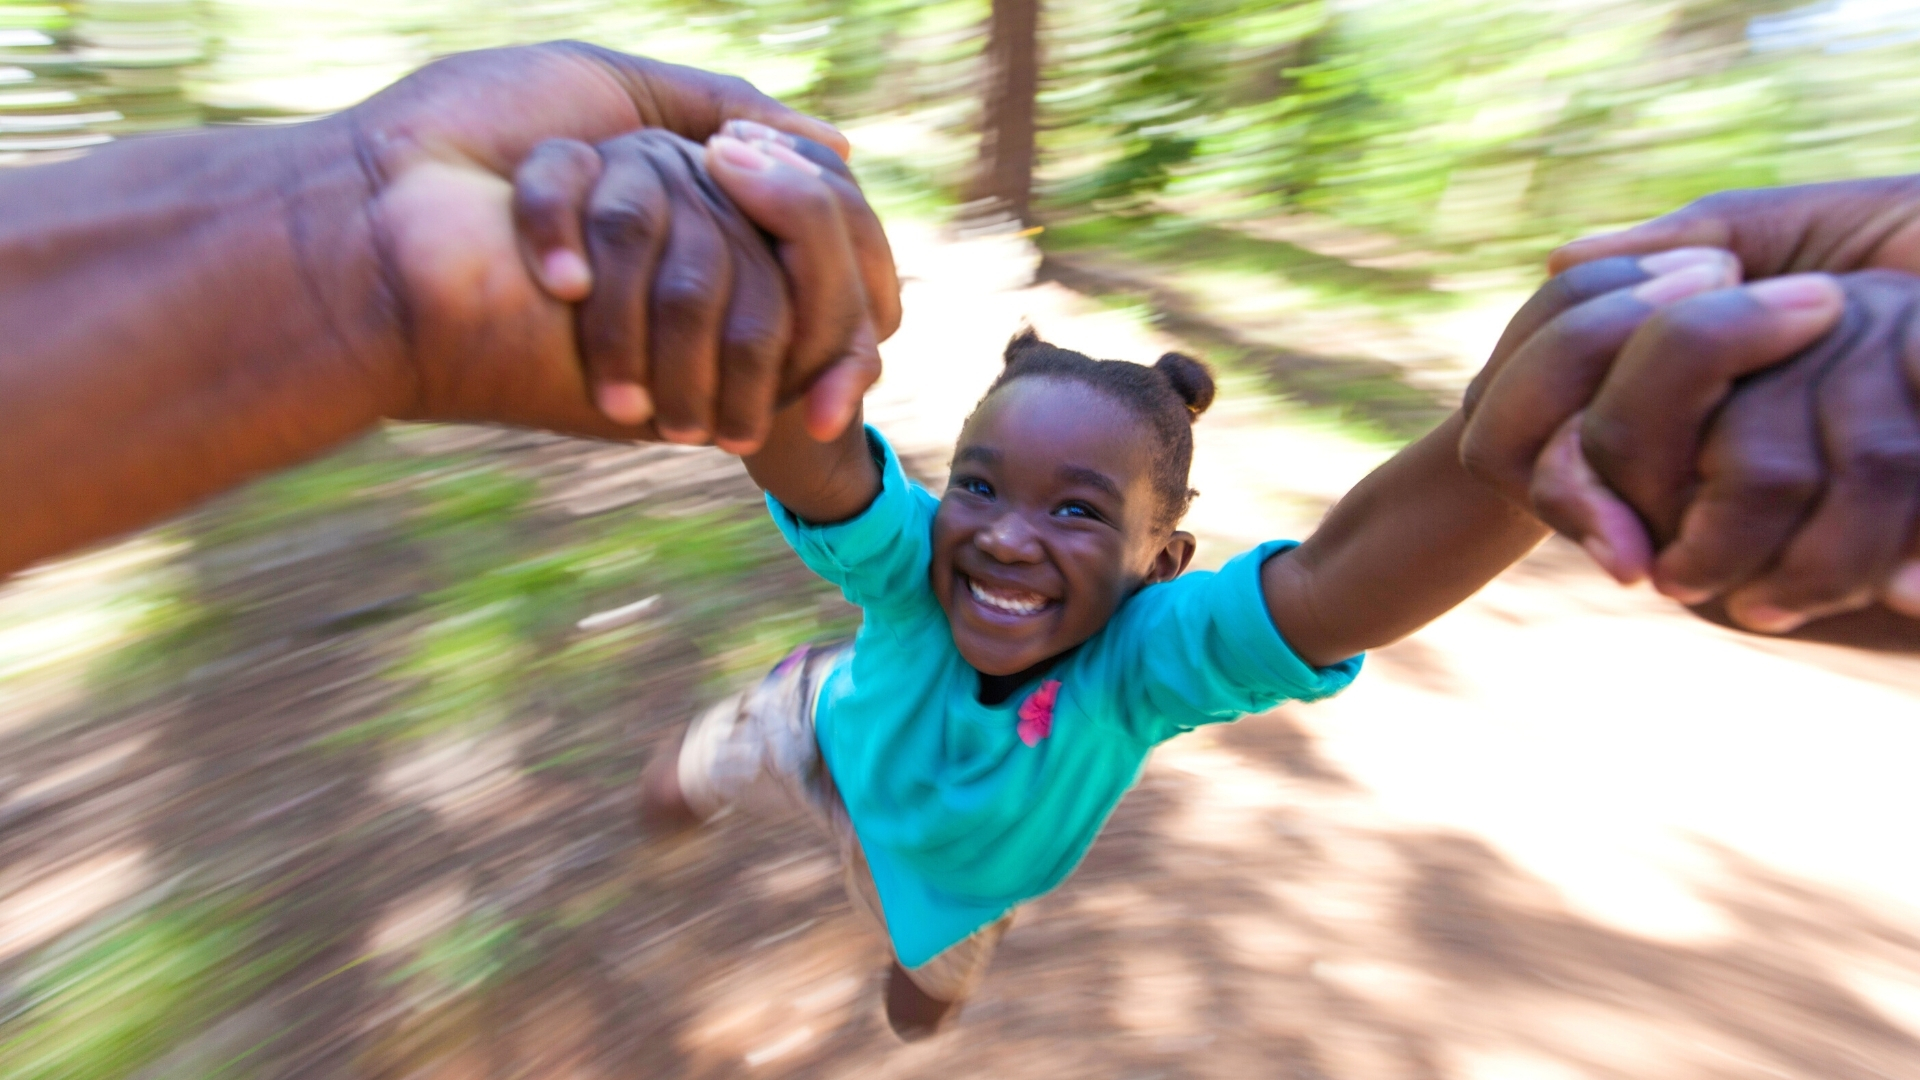 The joy of authentic humility - little African girl being made to fly by her loving father's hands